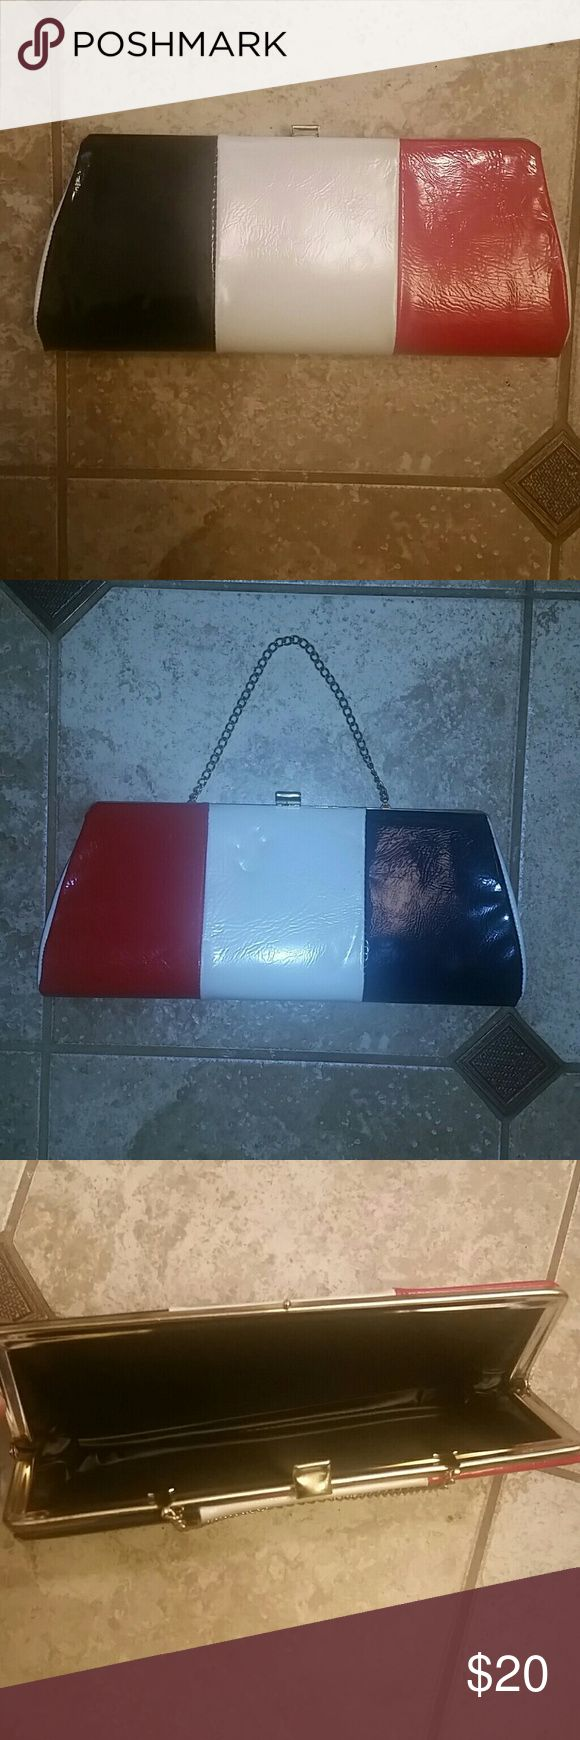 """Patriotic vintage clutch Red, blue (navy), and white clutch.  Patriotic and vintage like. W-11.5"""", H-4.5"""", gold chain strap -10"""", drop strap-4.5"""".  Clean and excellent condition! Bags Clutches & Wristlets"""